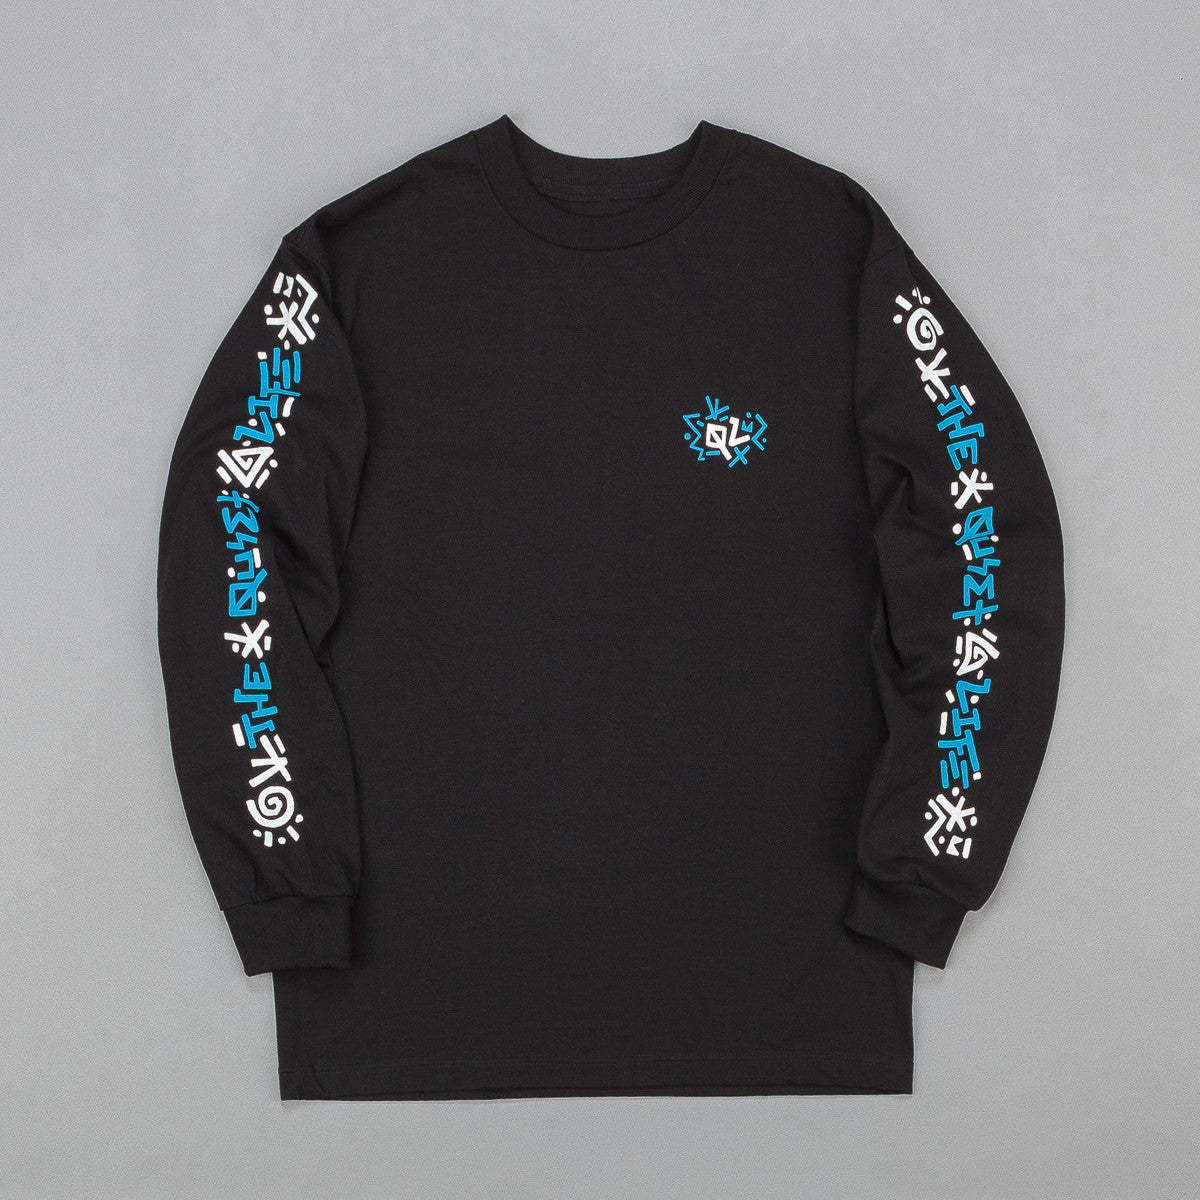 The Quiet Life Plus Long Sleeve T-Shirt - Black